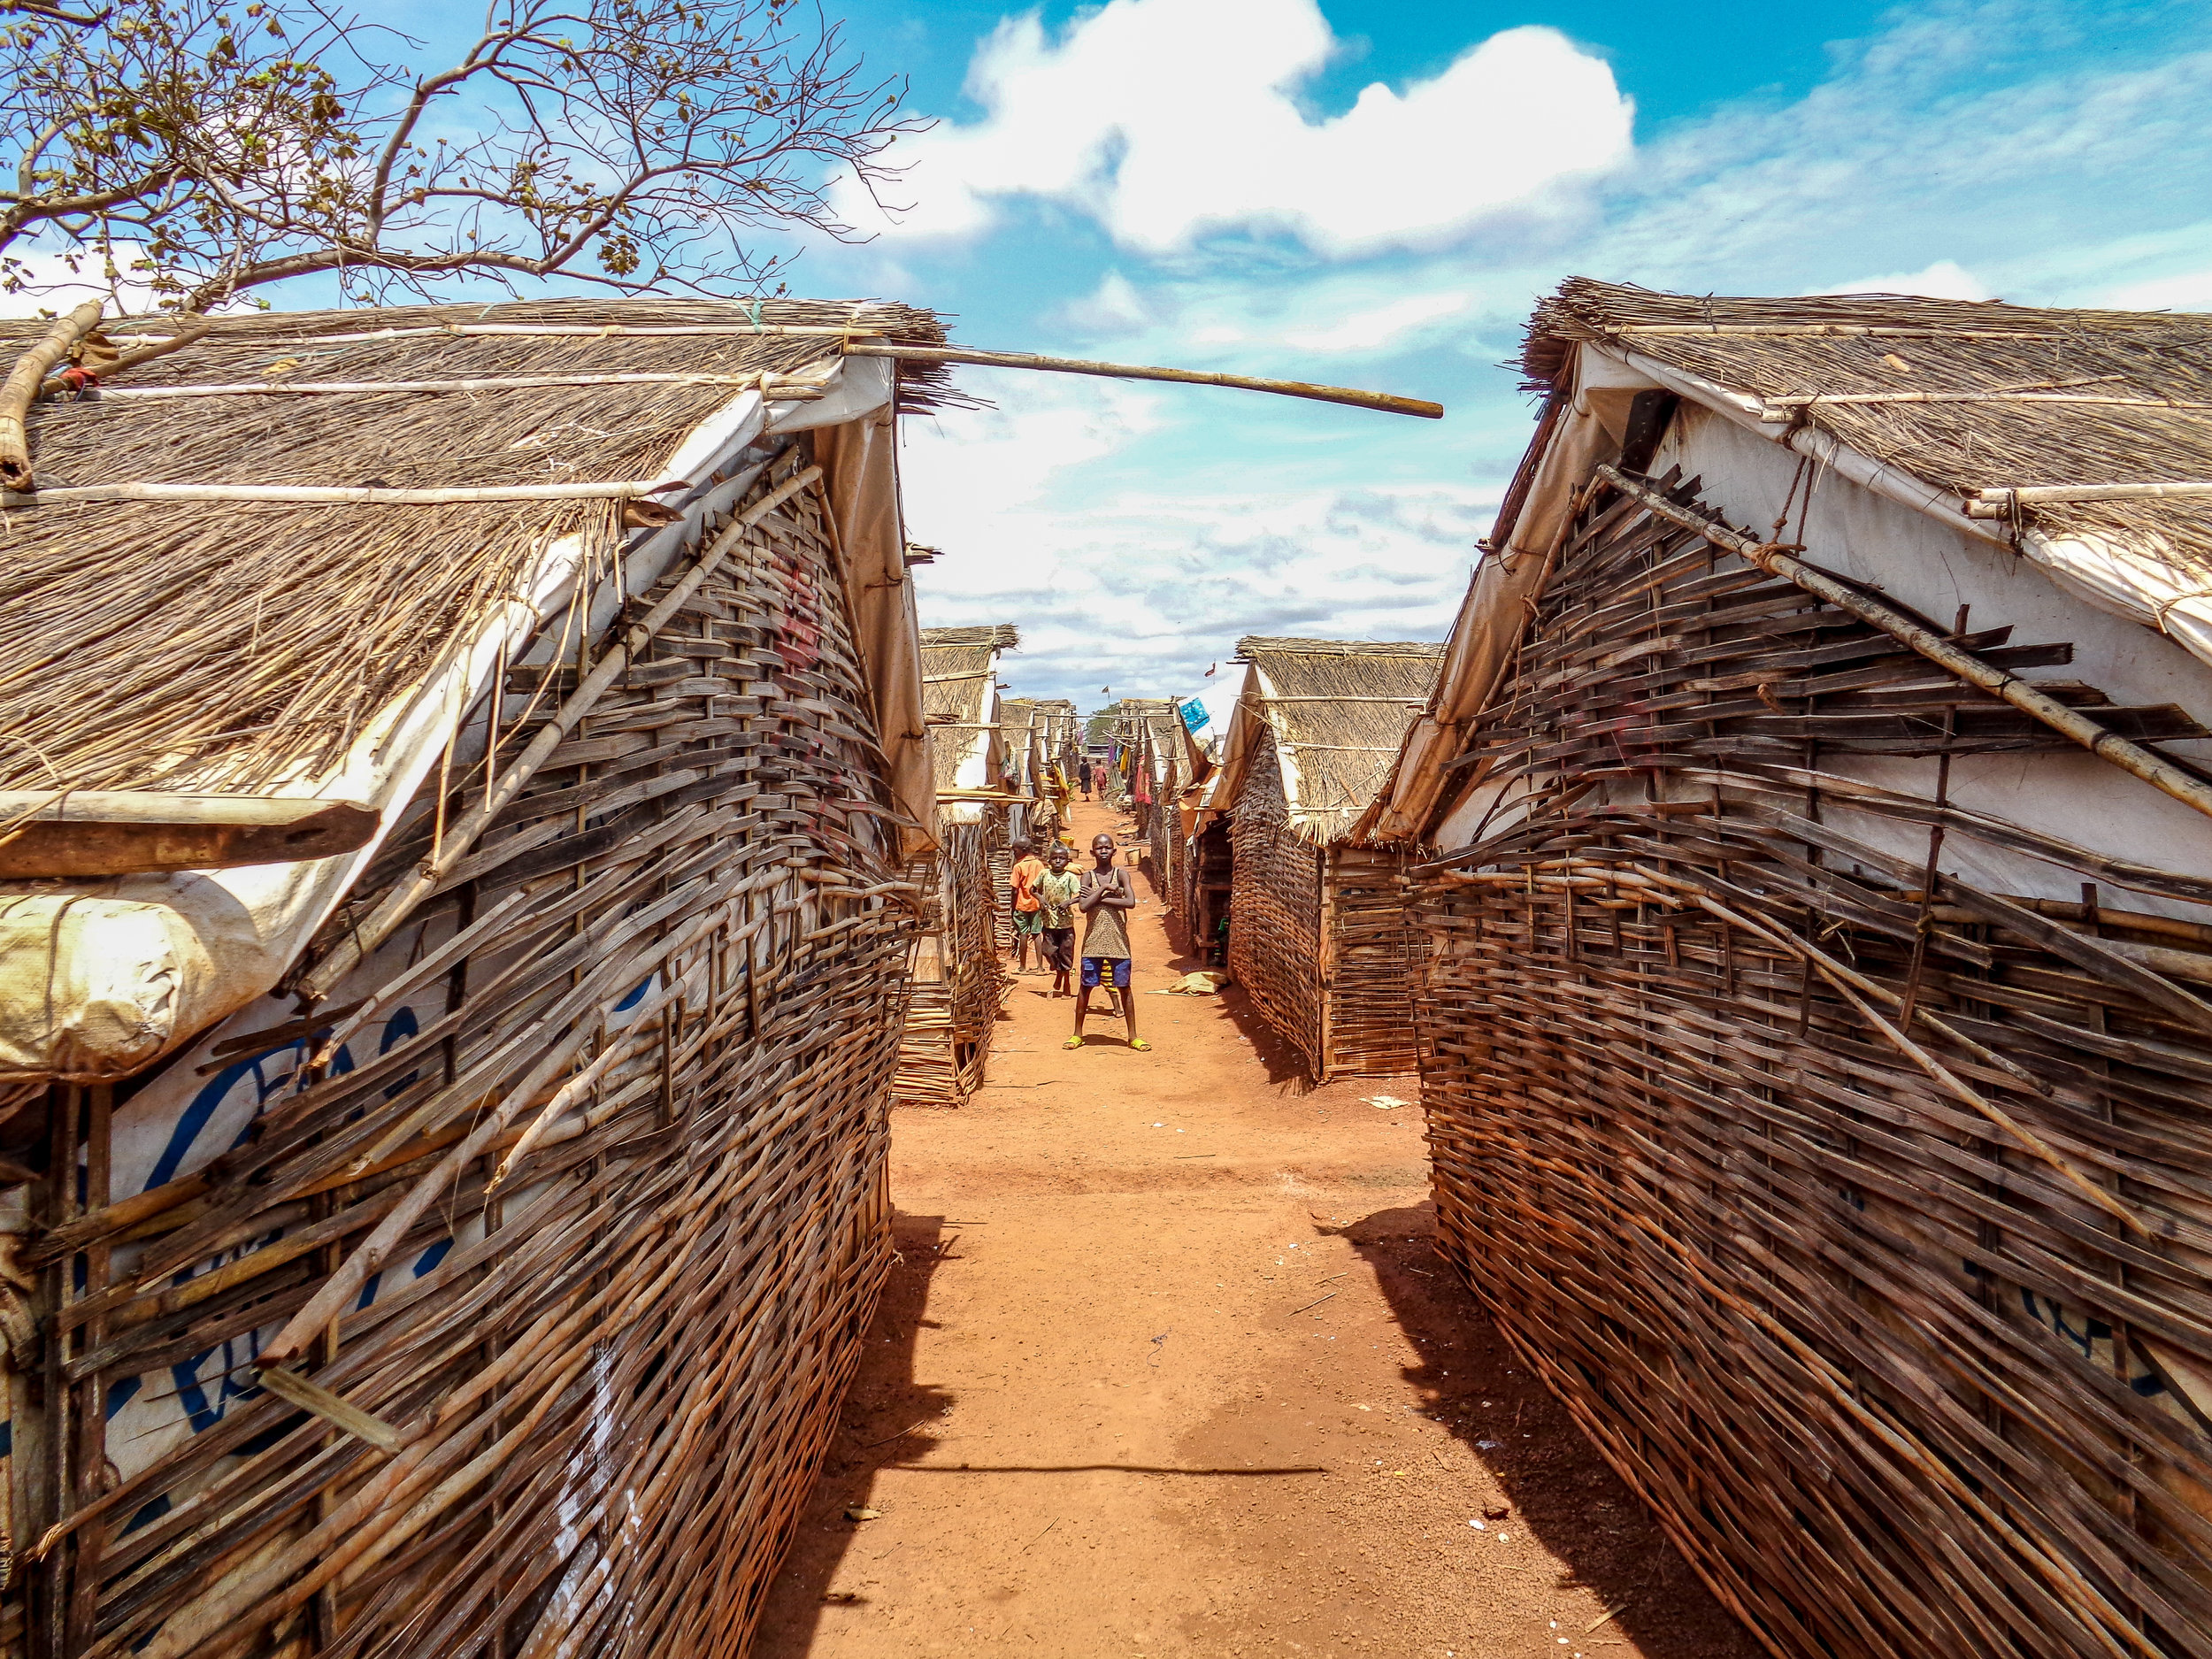 View of shelters in South Sudan where internally displaced people live in a UN-hosted Protection of Civilian site (PoCs). Photo Credit: Refugees International.